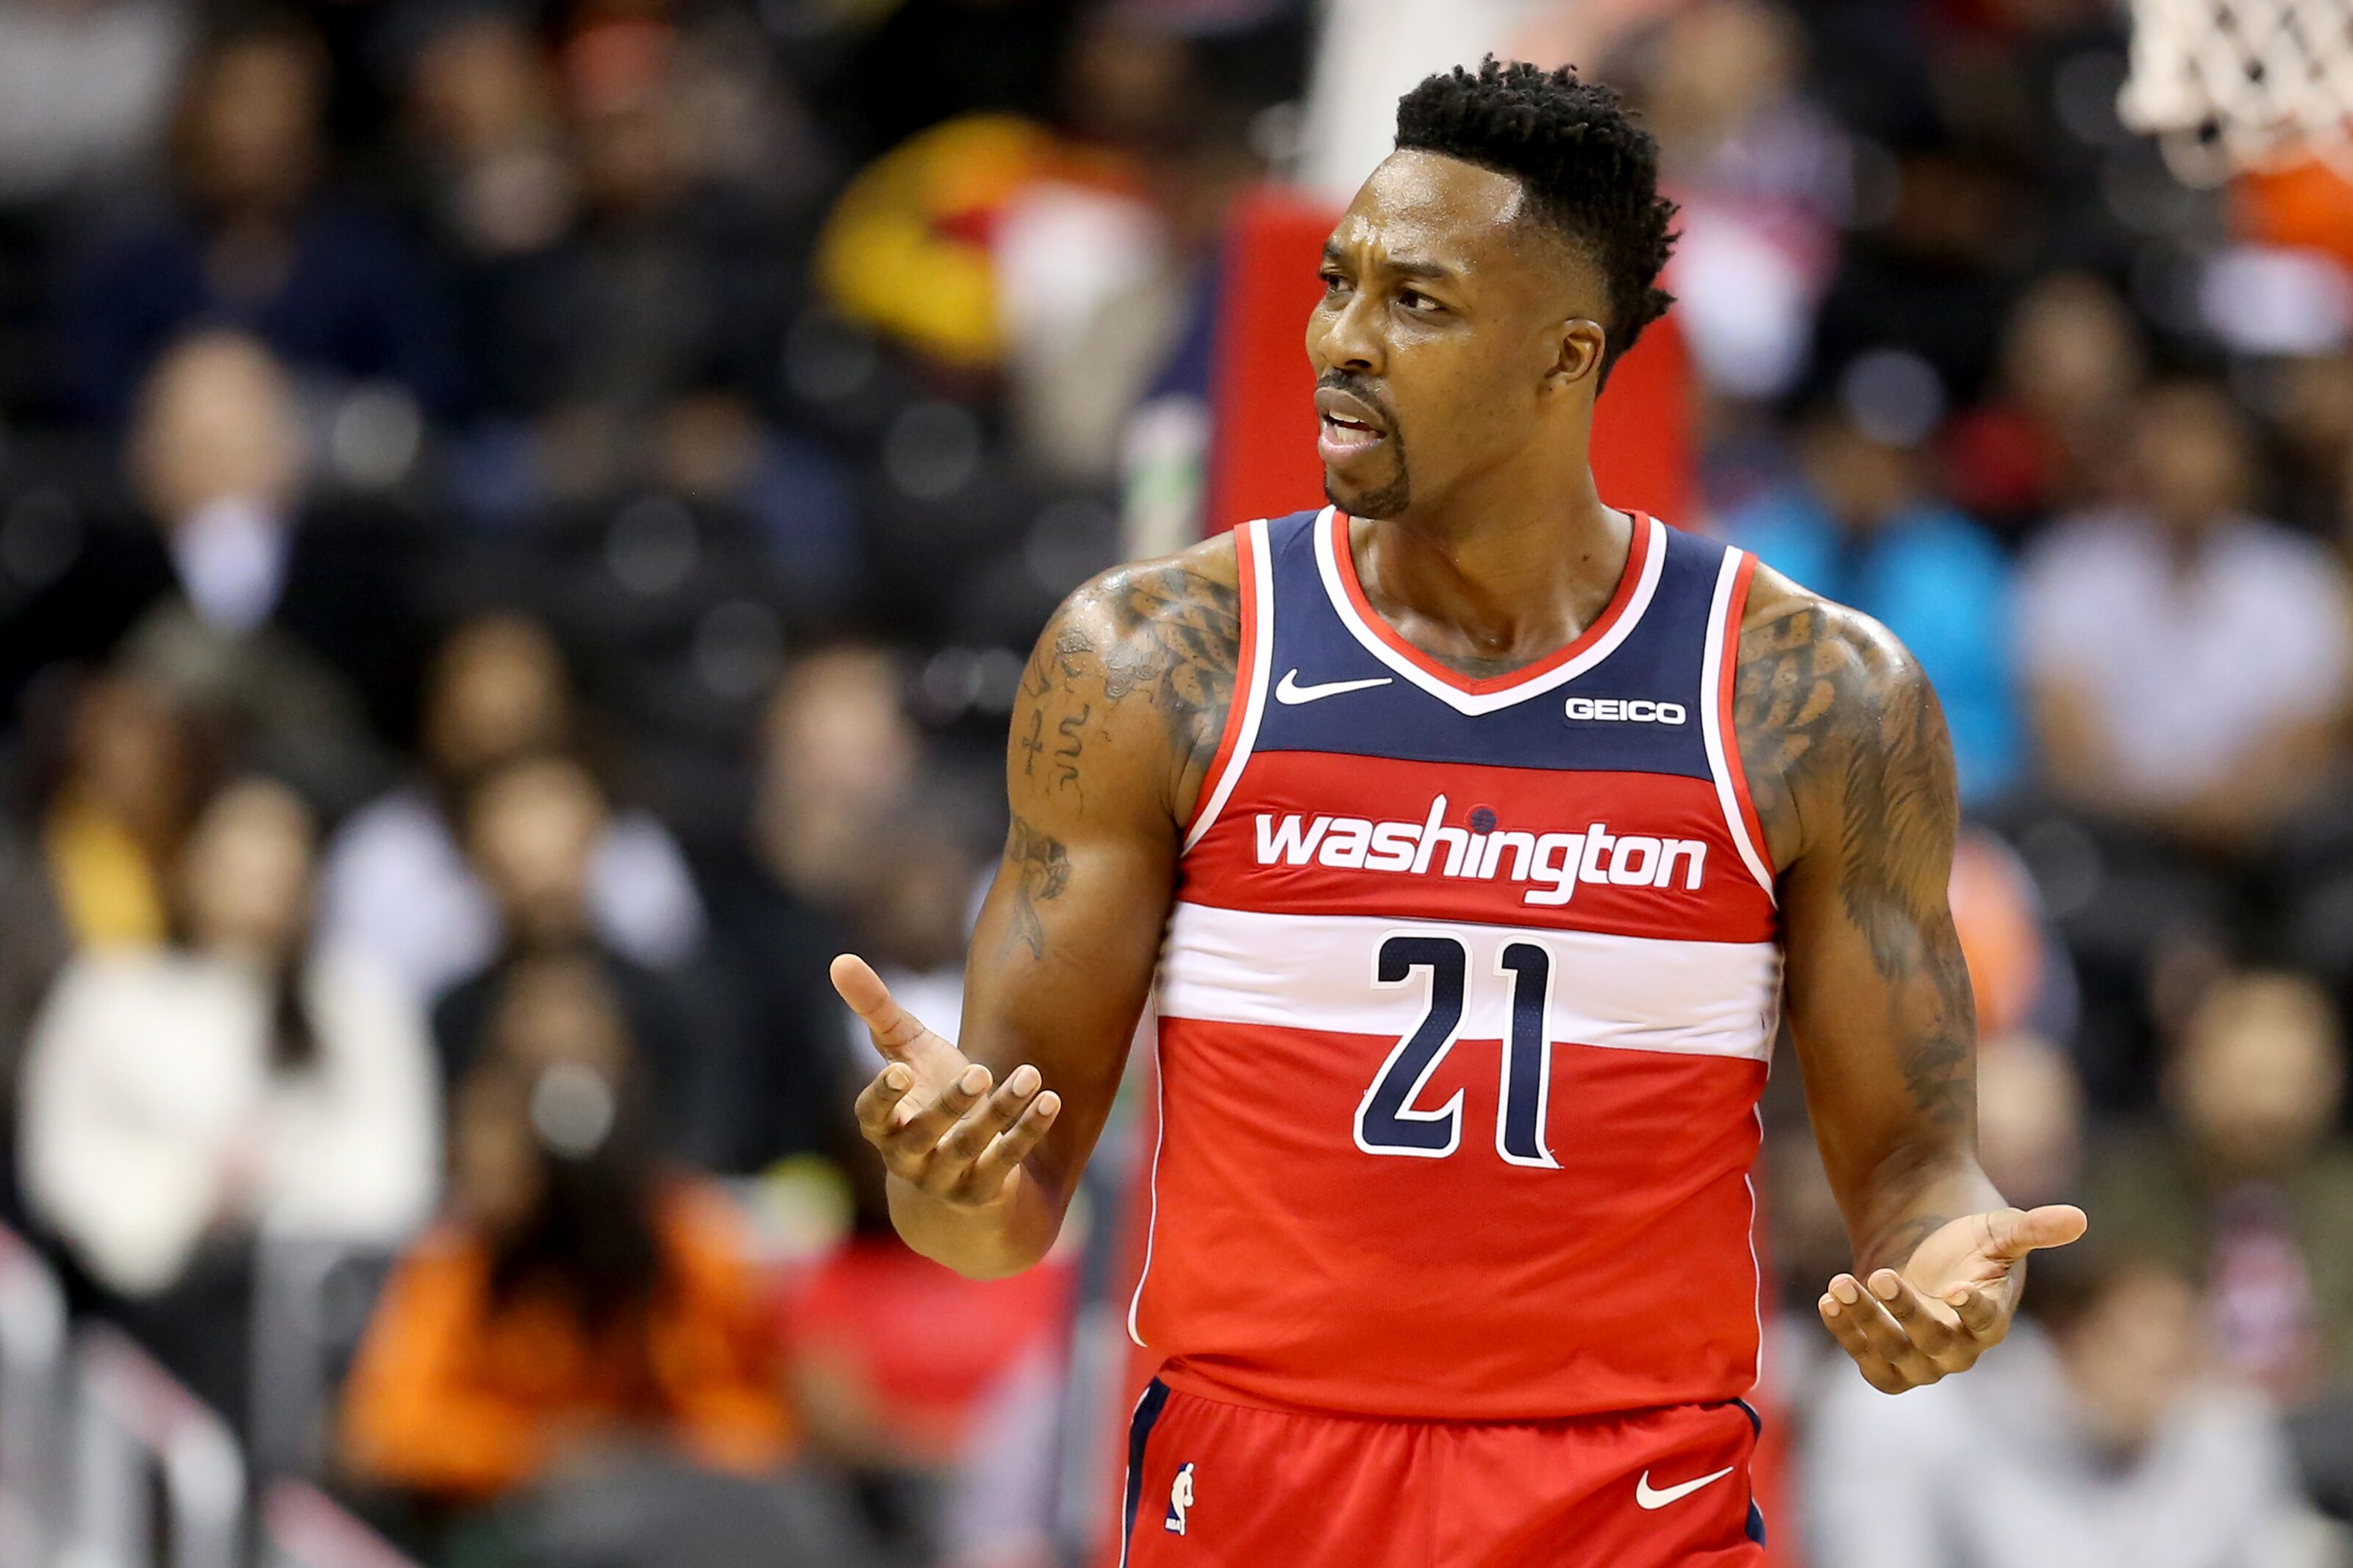 Los Angeles Lakers: Dwight Howard is quietly one of the league's best